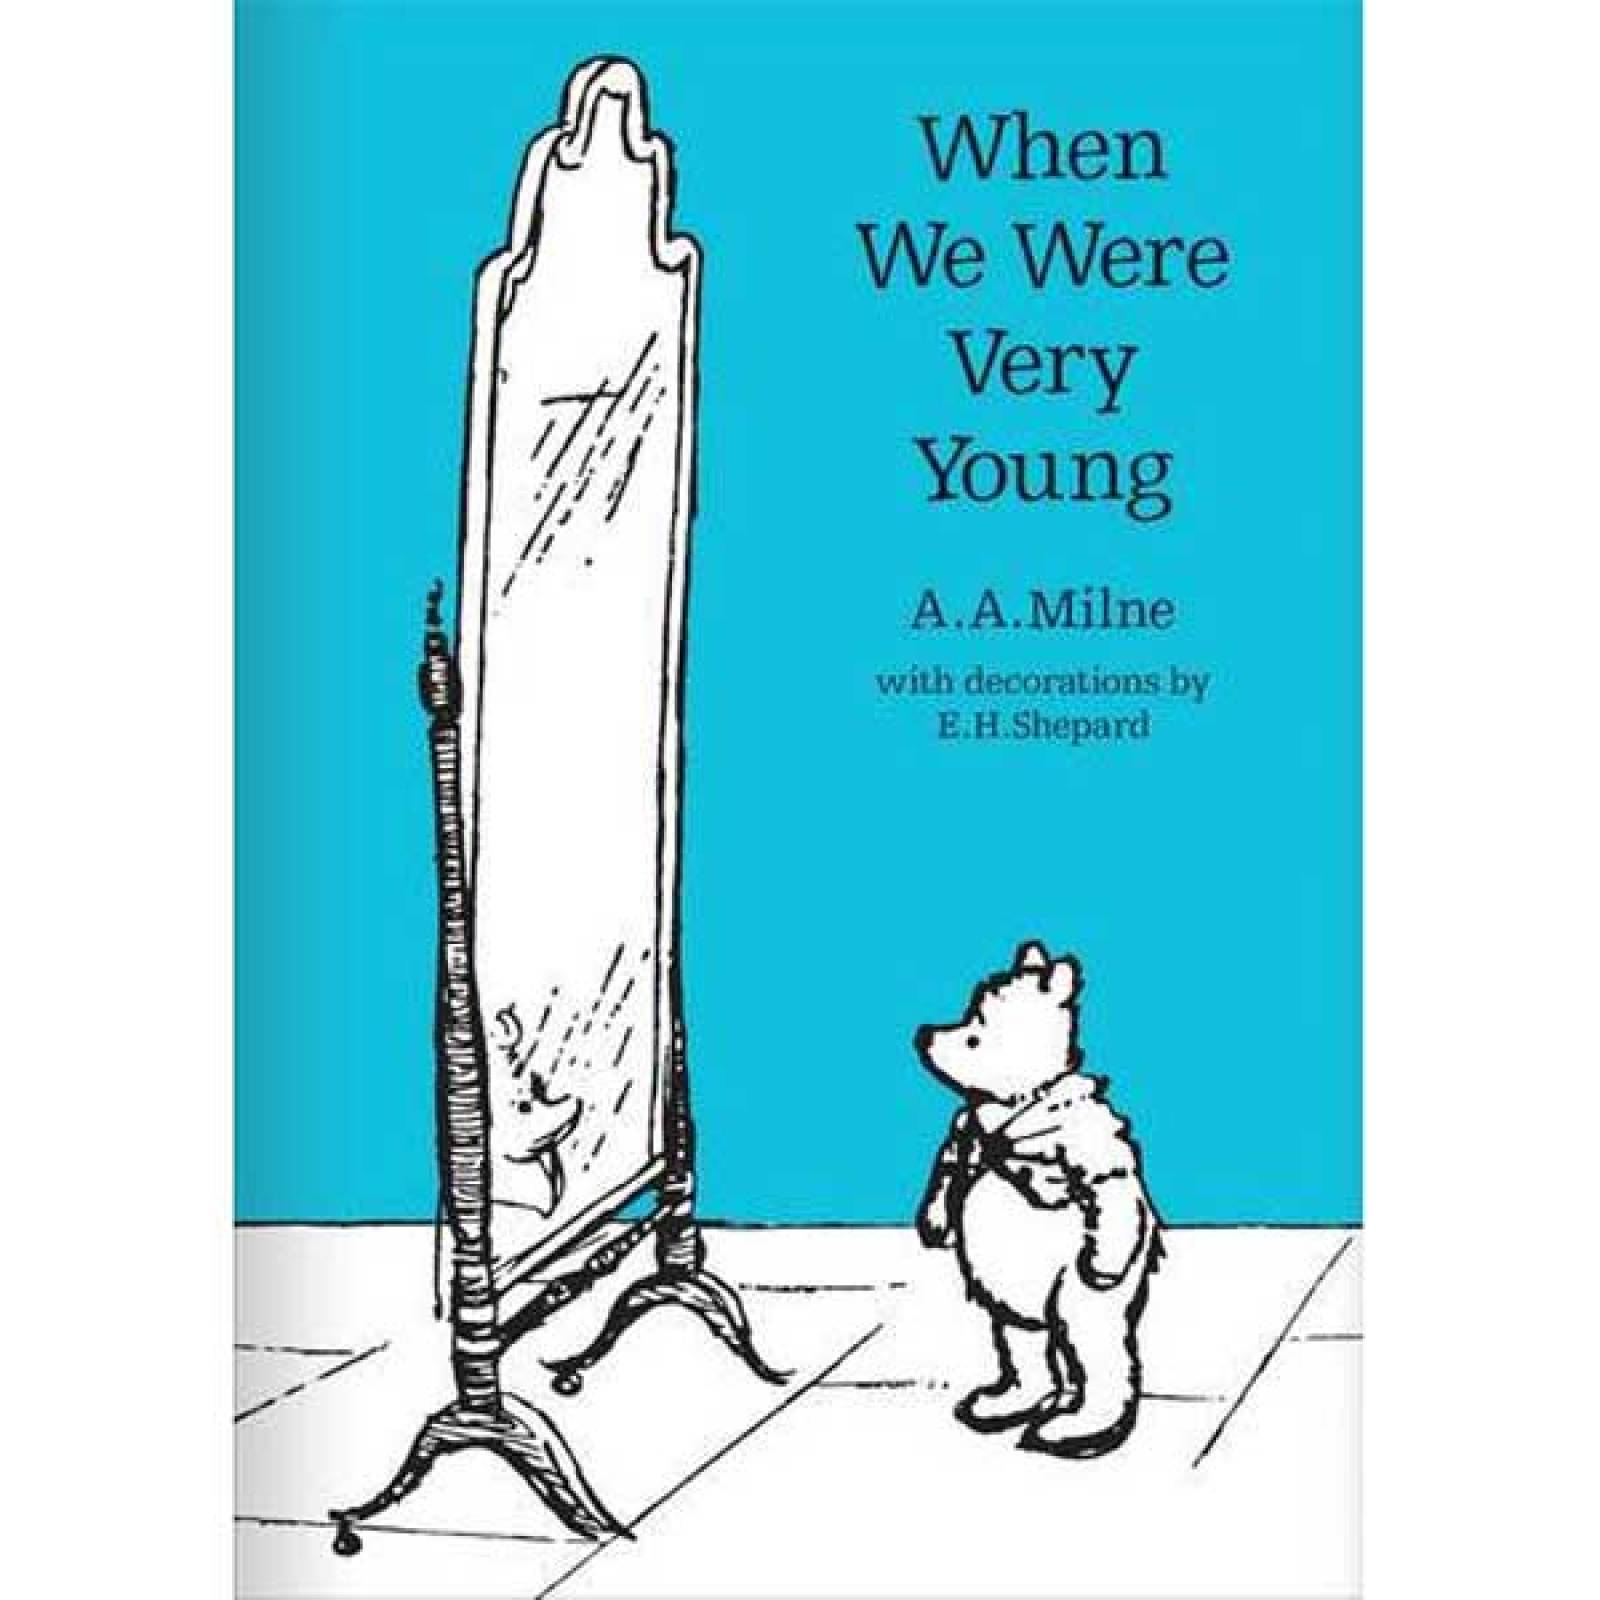 When We Were Very Young By A.A.Milne Hardback Book